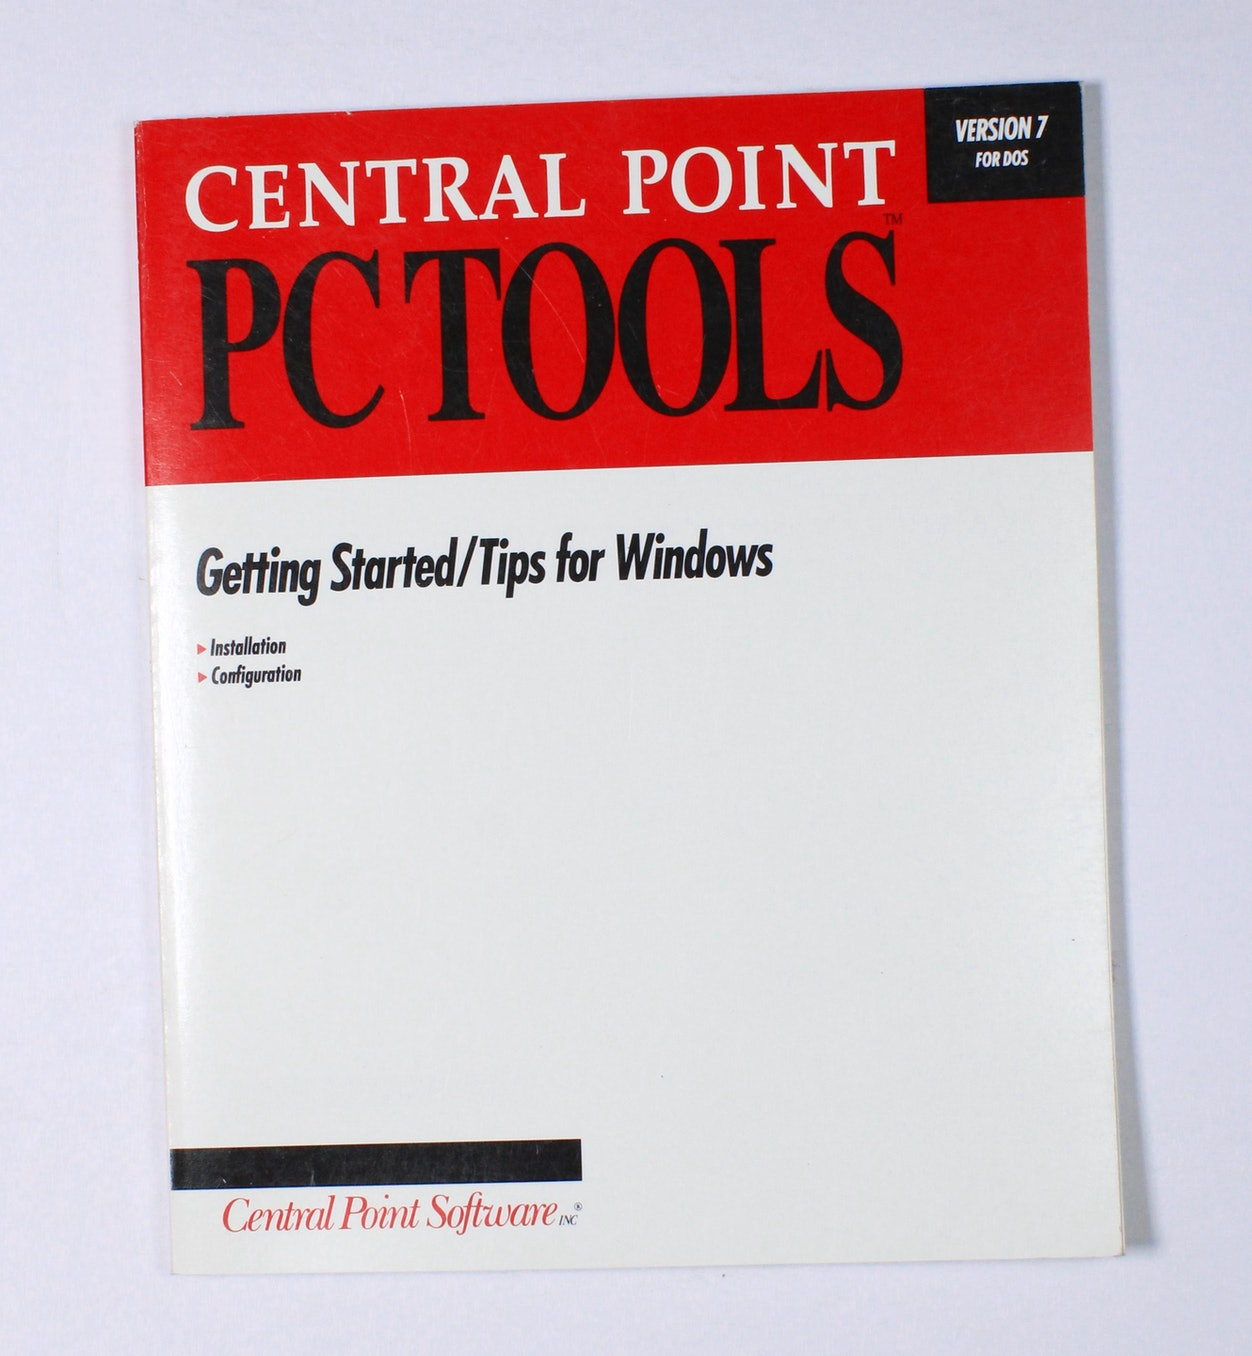 Central Point PC Tools: Getting Started/Tips for Windows